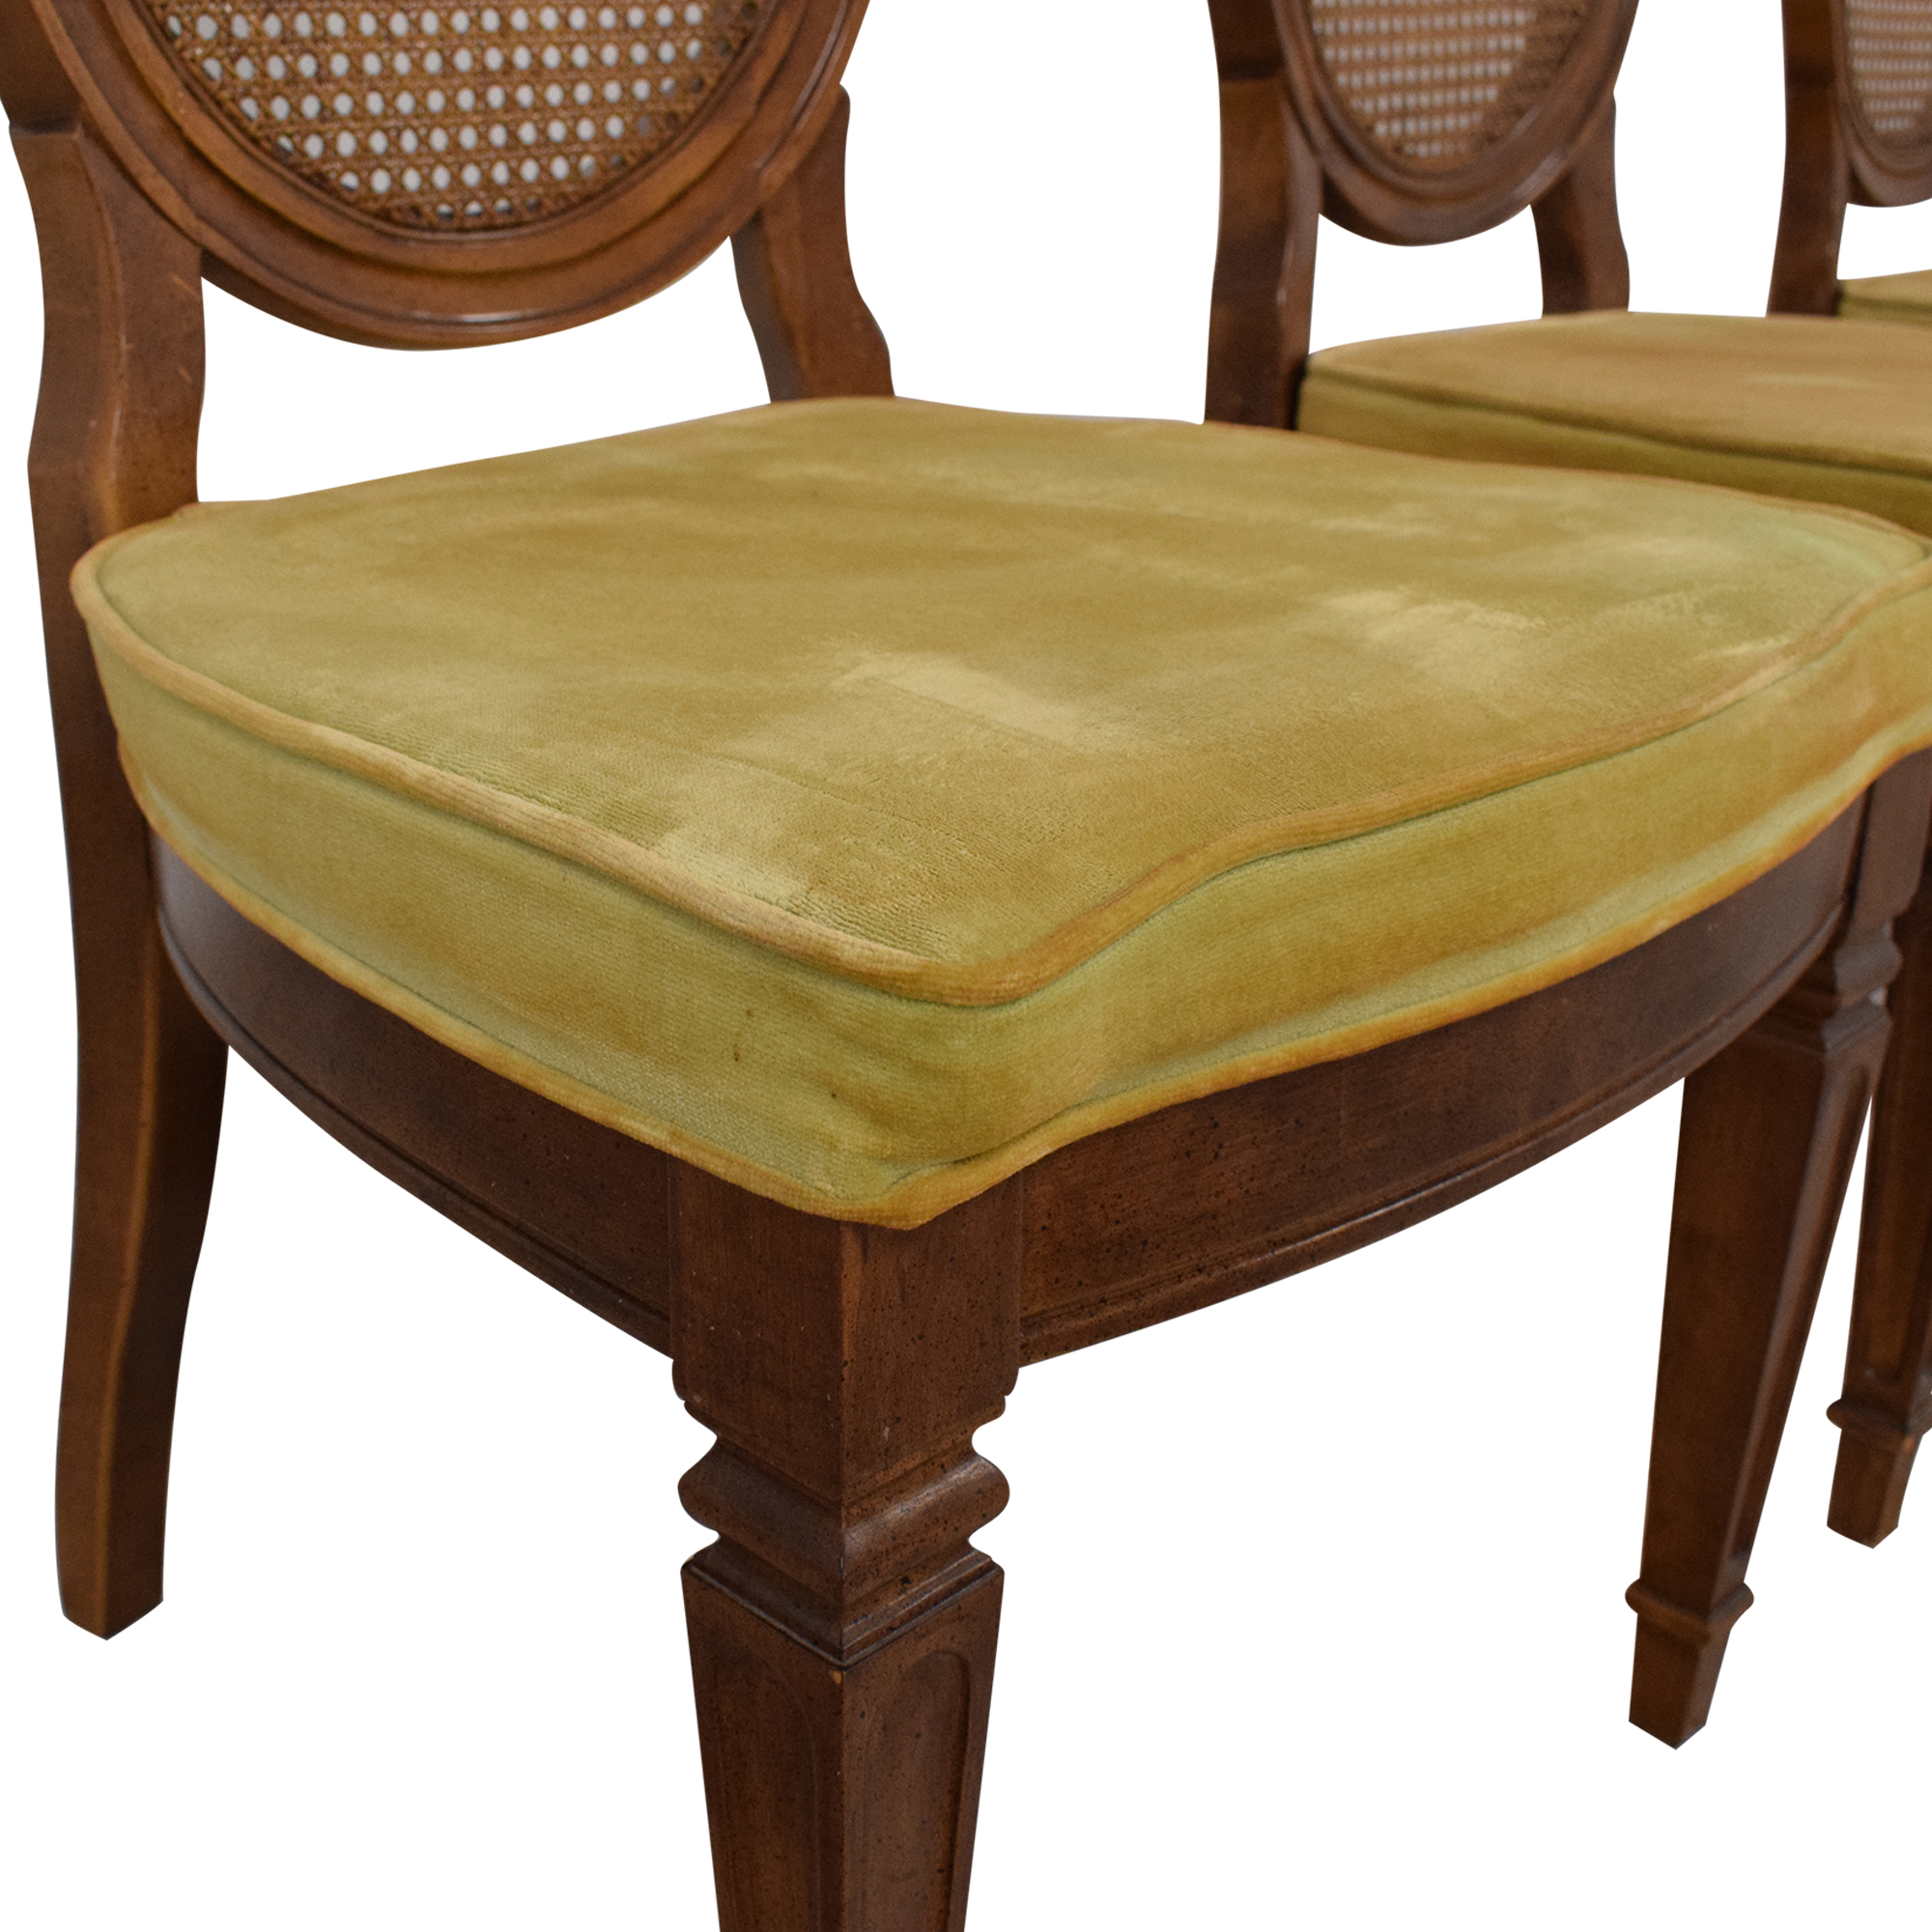 Thomasville Italian Provincial Style Dining Chairs Thomasville